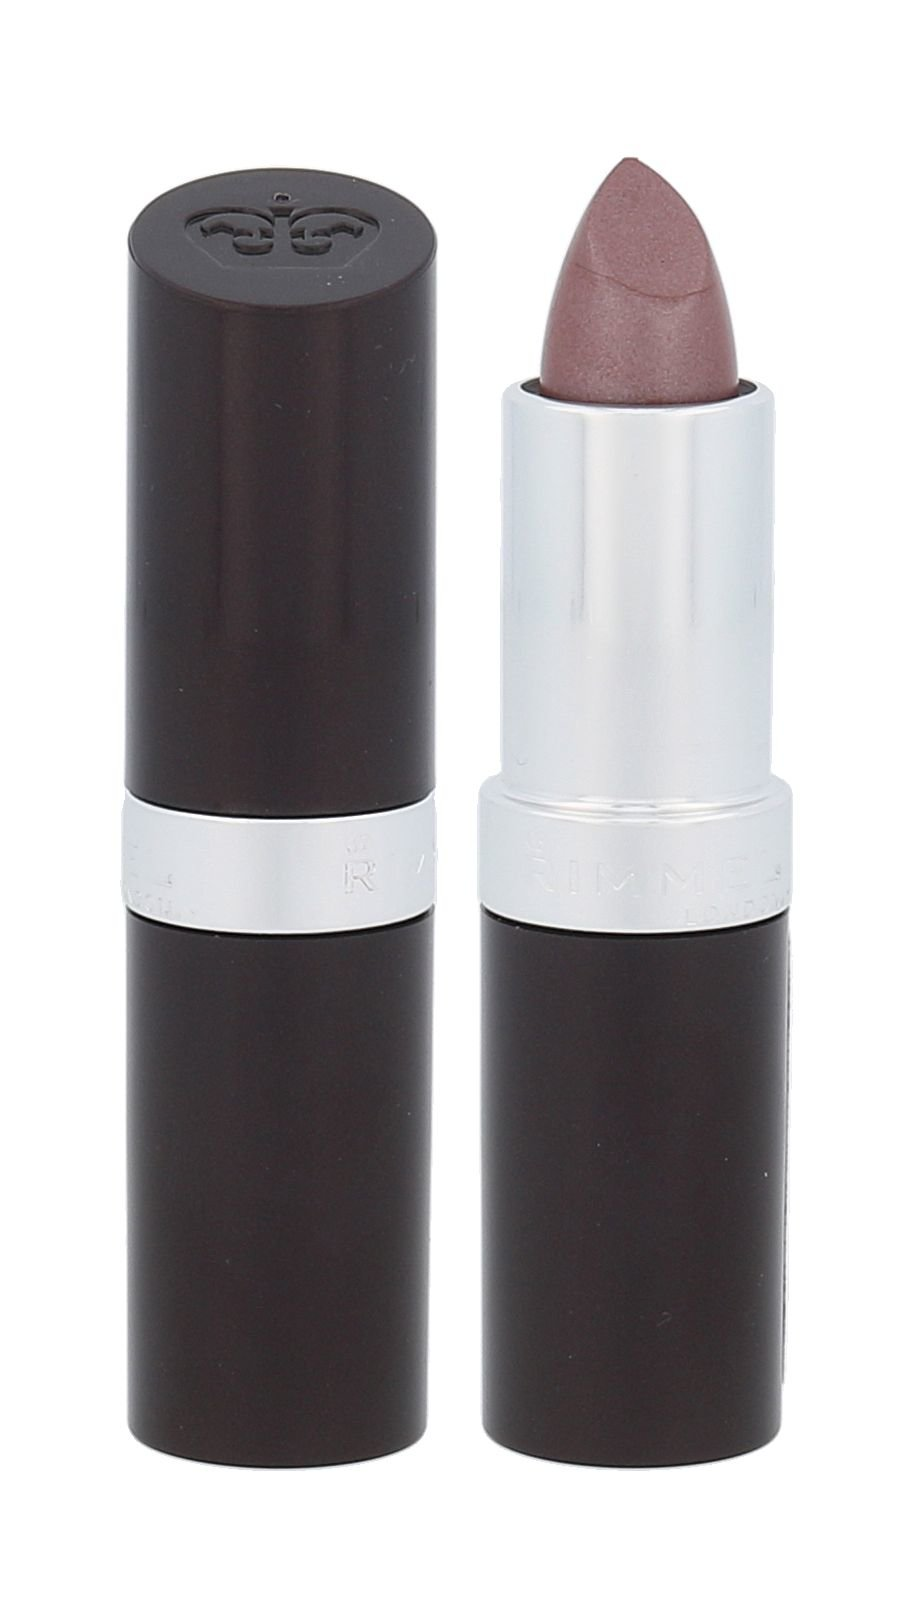 Rimmel London Lasting Finish Cosmetic 4ml 264 Coffee Shimmer